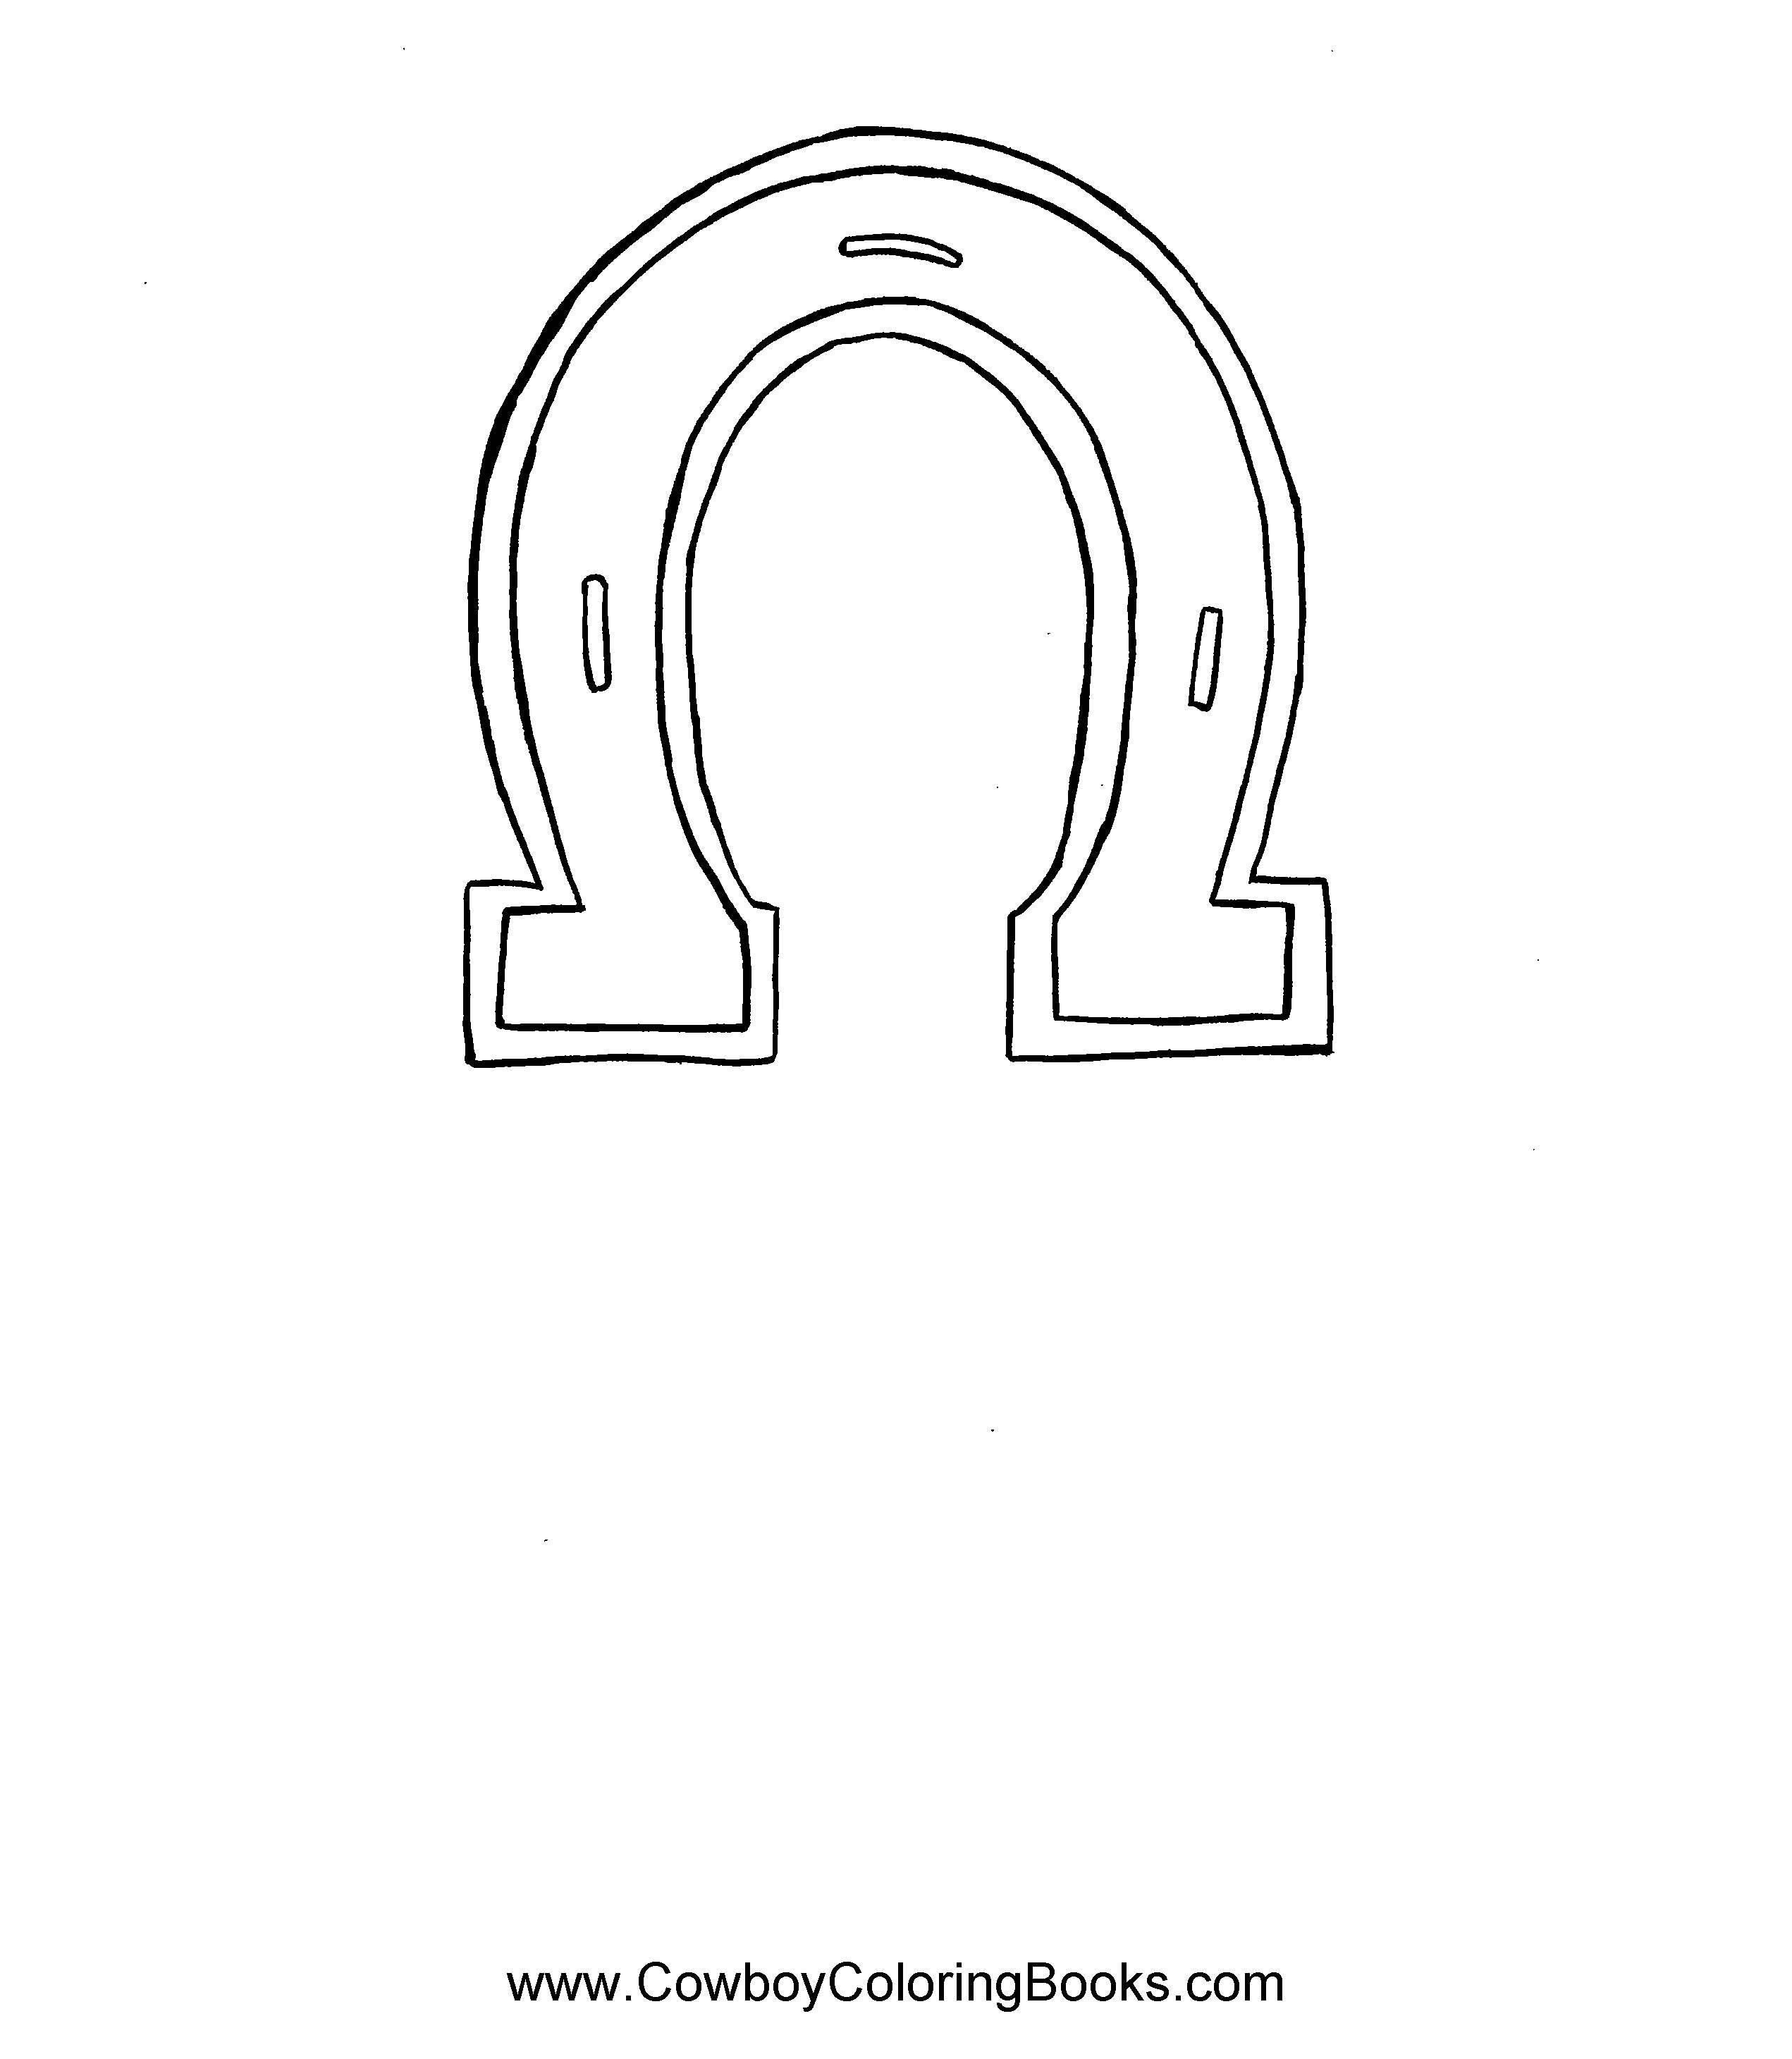 Horse Shoe Coloring Page Use For A Pattern Could Make This Out Of Cardboard And Do The Foil On It Vacation Bible School Craft Cup Crafts Bible School Crafts